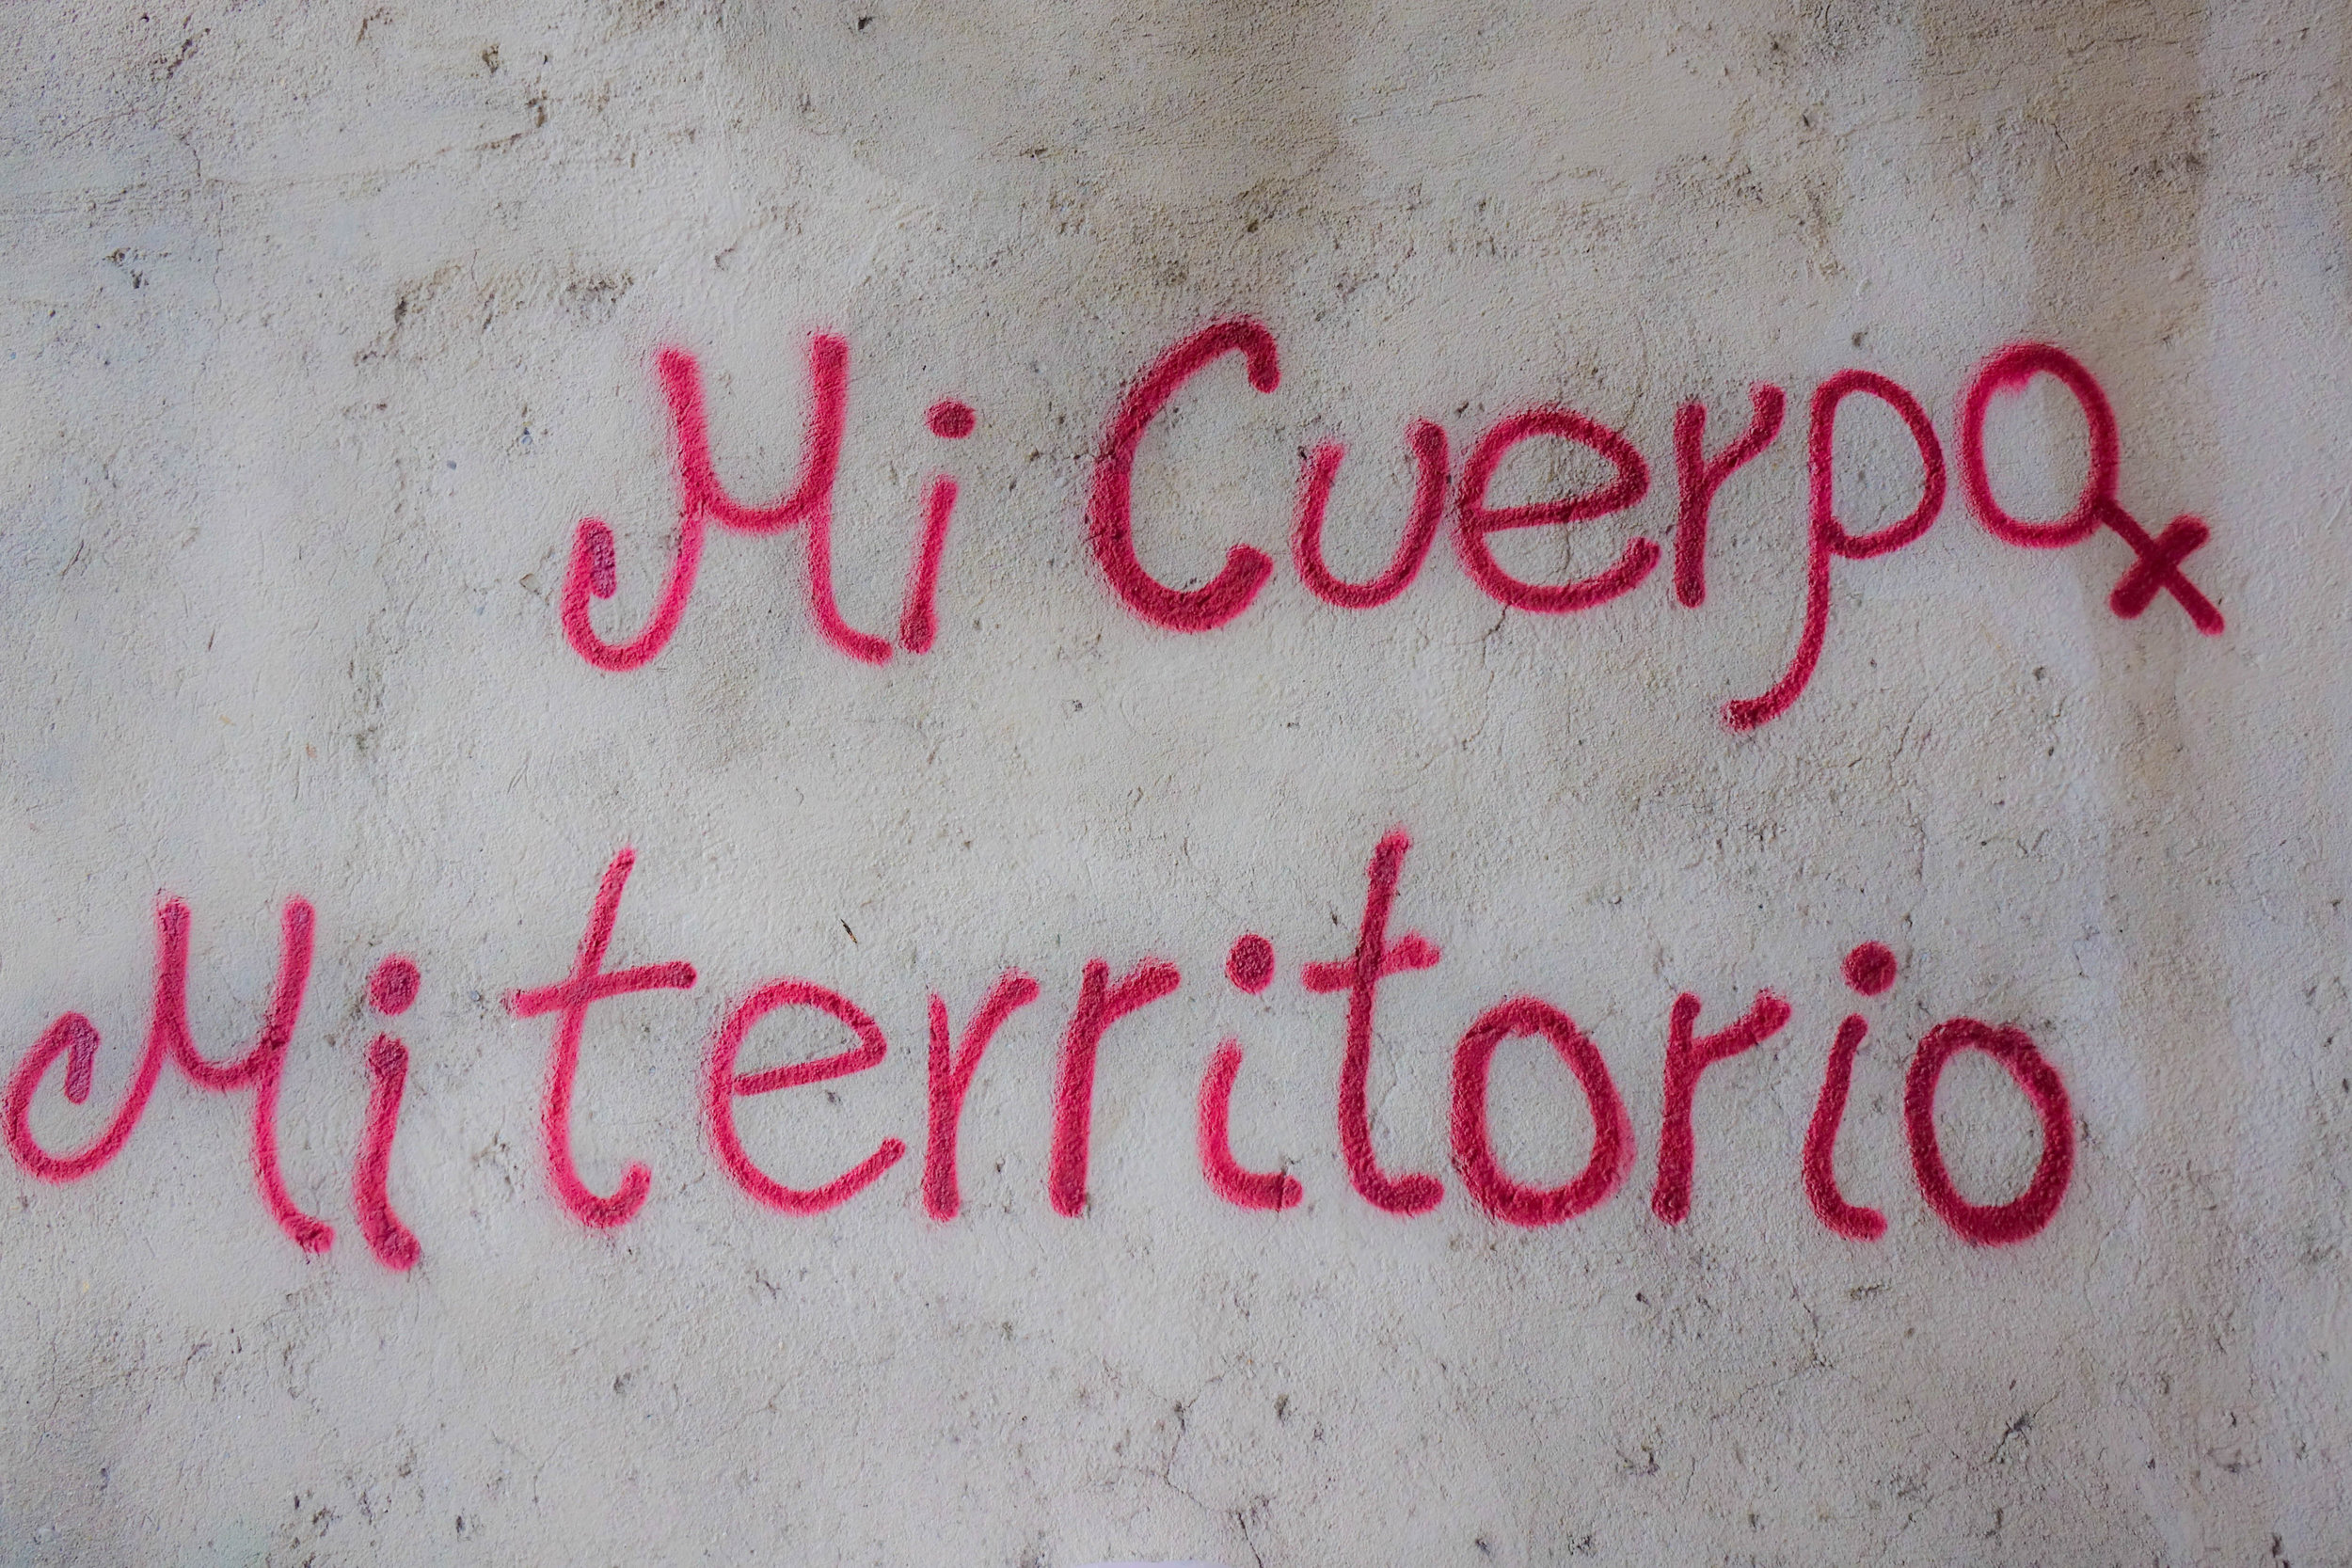 """My body, My Territory"". Graffiti advocating for women's rights can be found on the streets of Tegucigalpa."